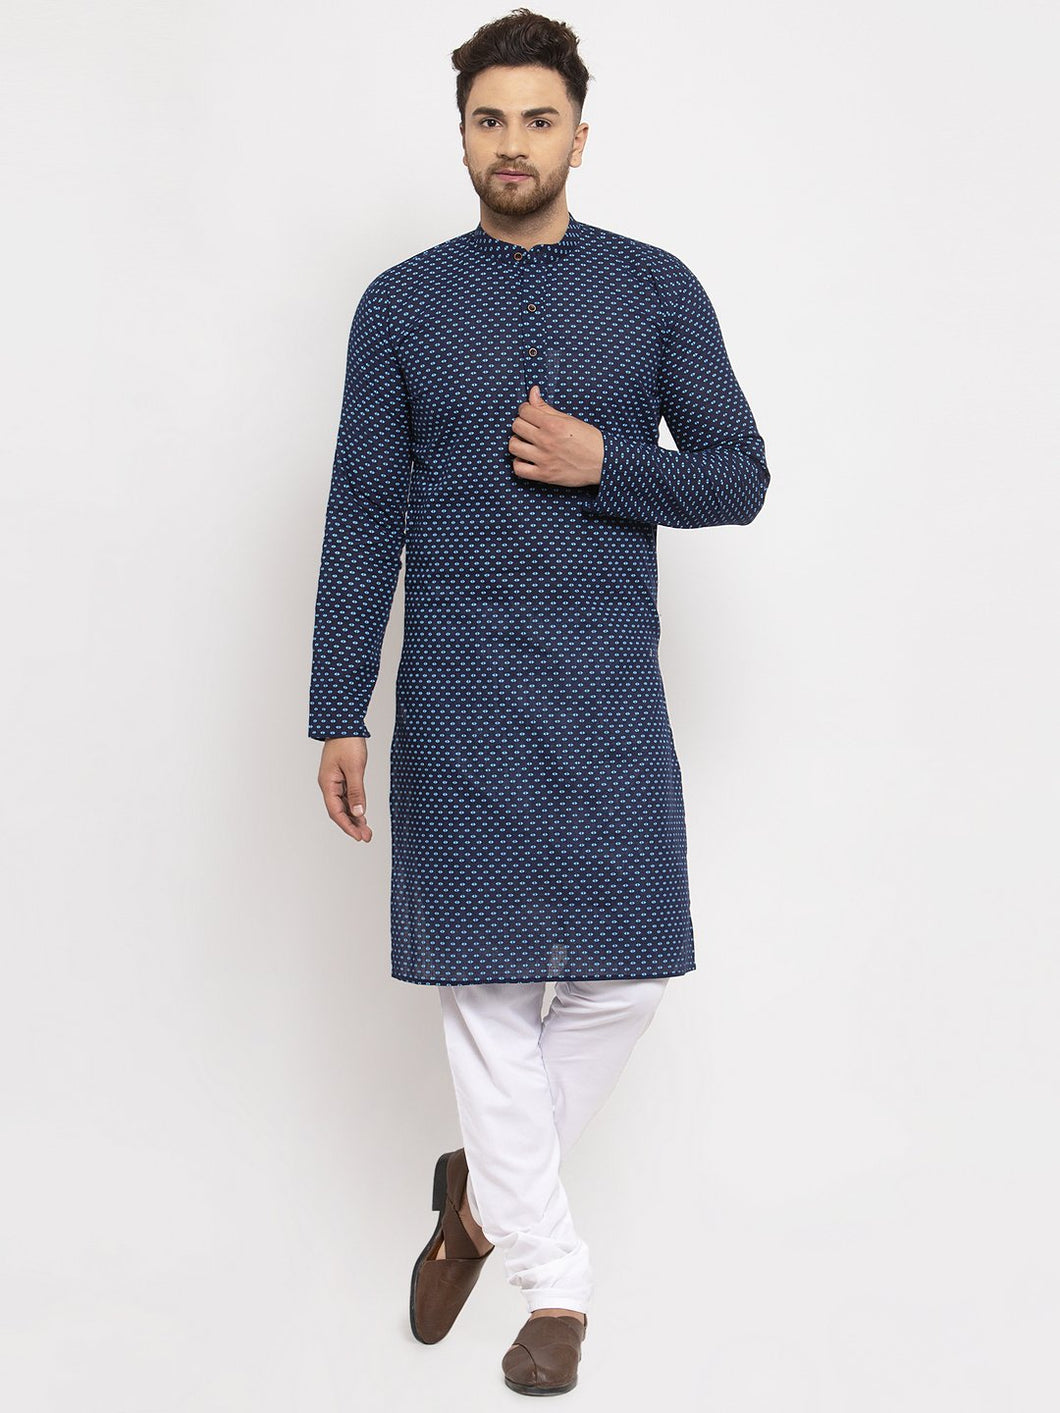 Jompers Men Blue Cotton Printed Kurta Only ( KO 614 Blue )